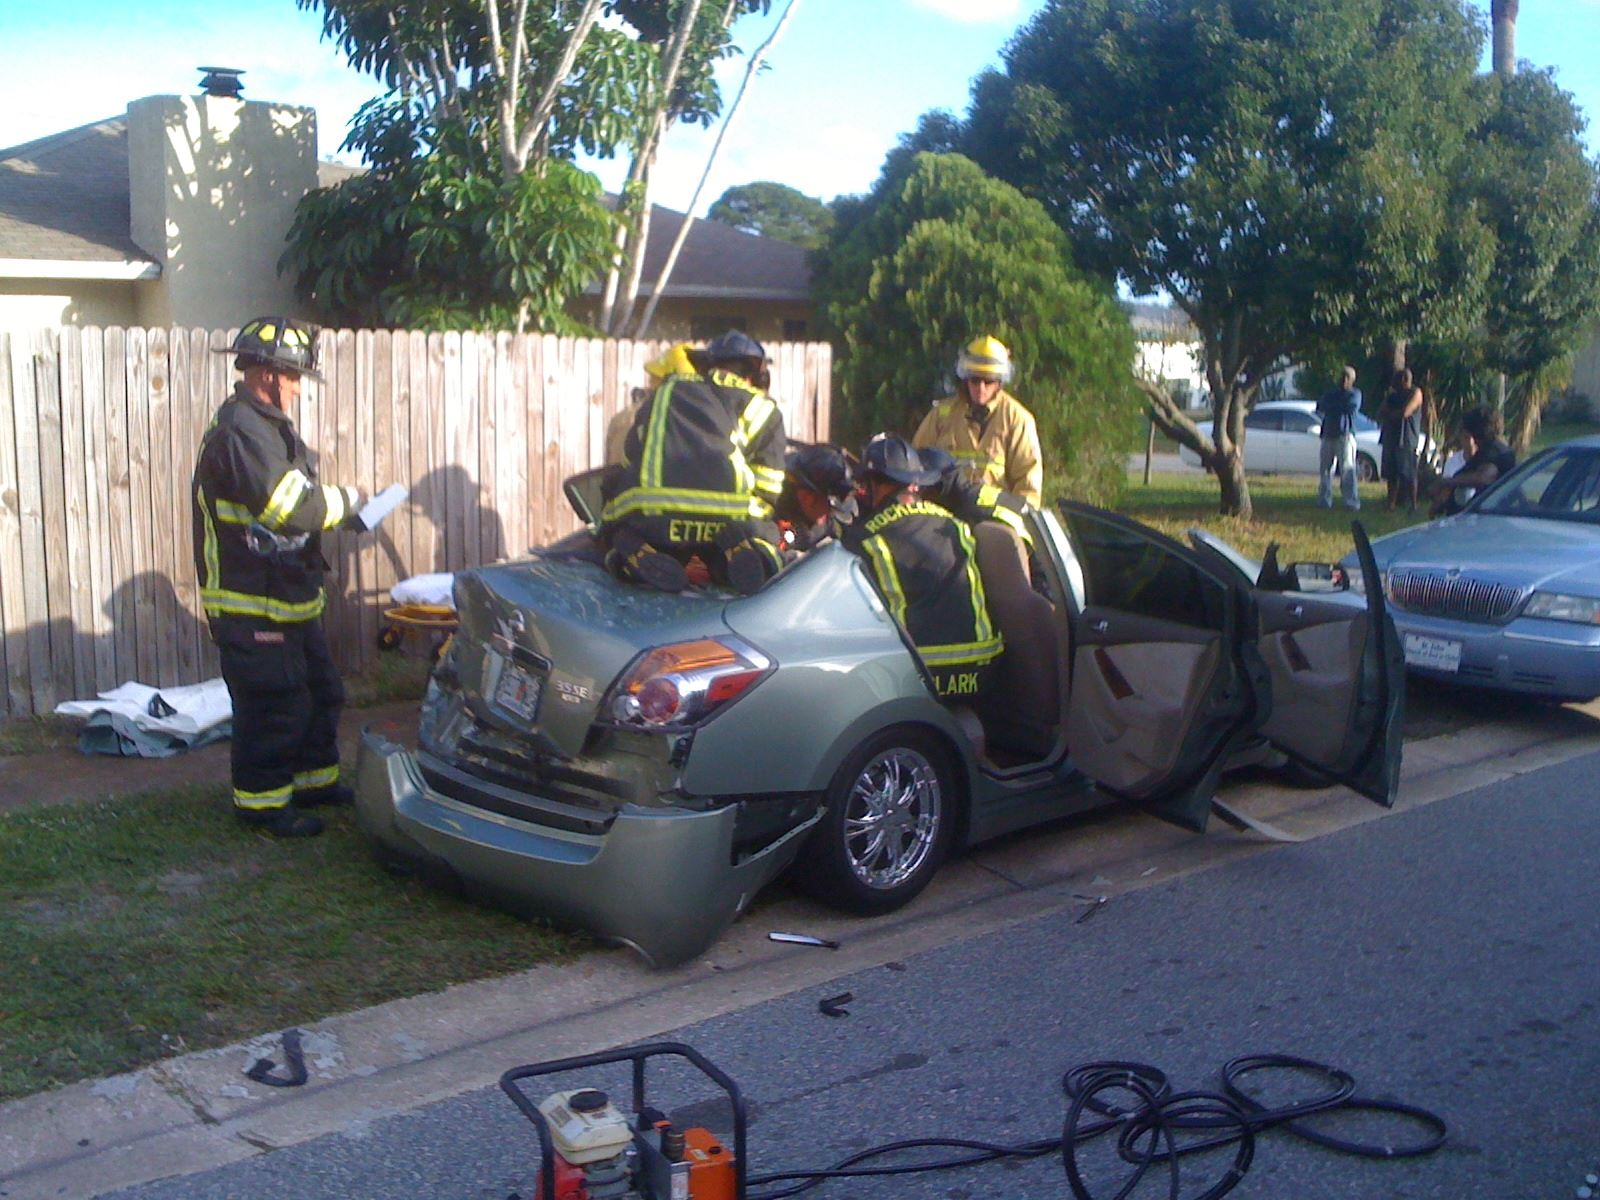 Firefighters in a damaged car